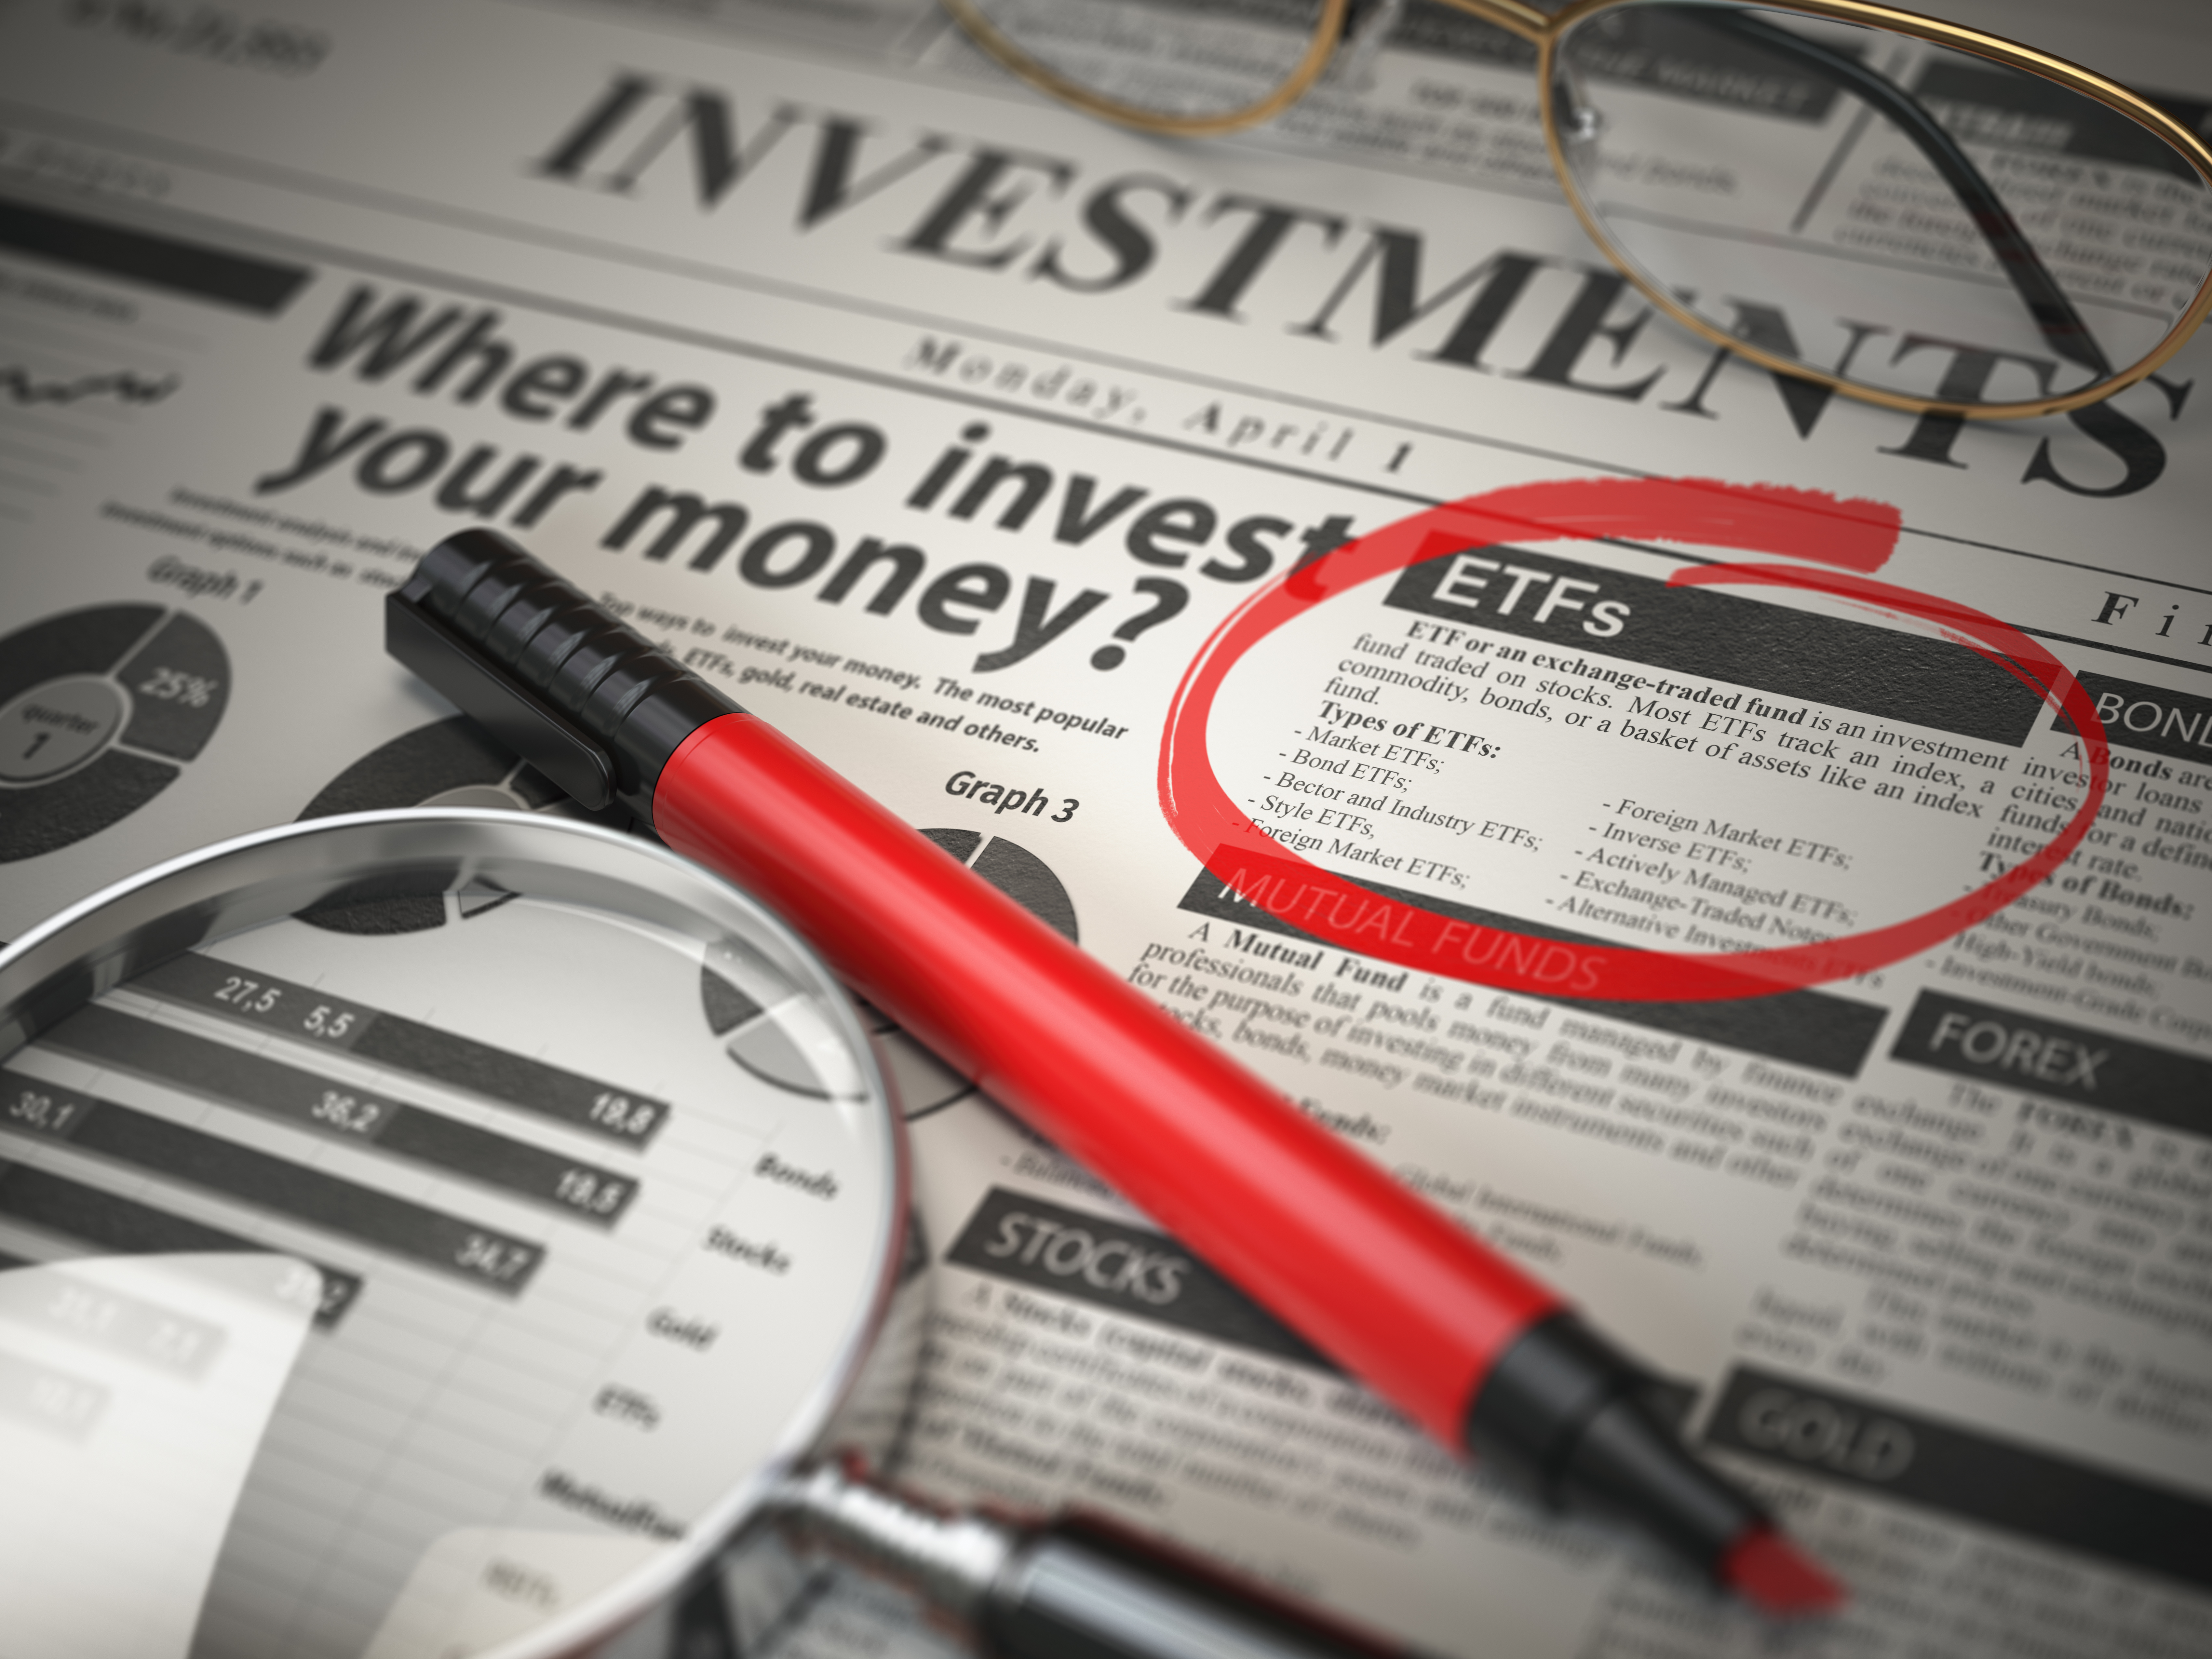 How to Invest in Stocks Without Burning Yourself